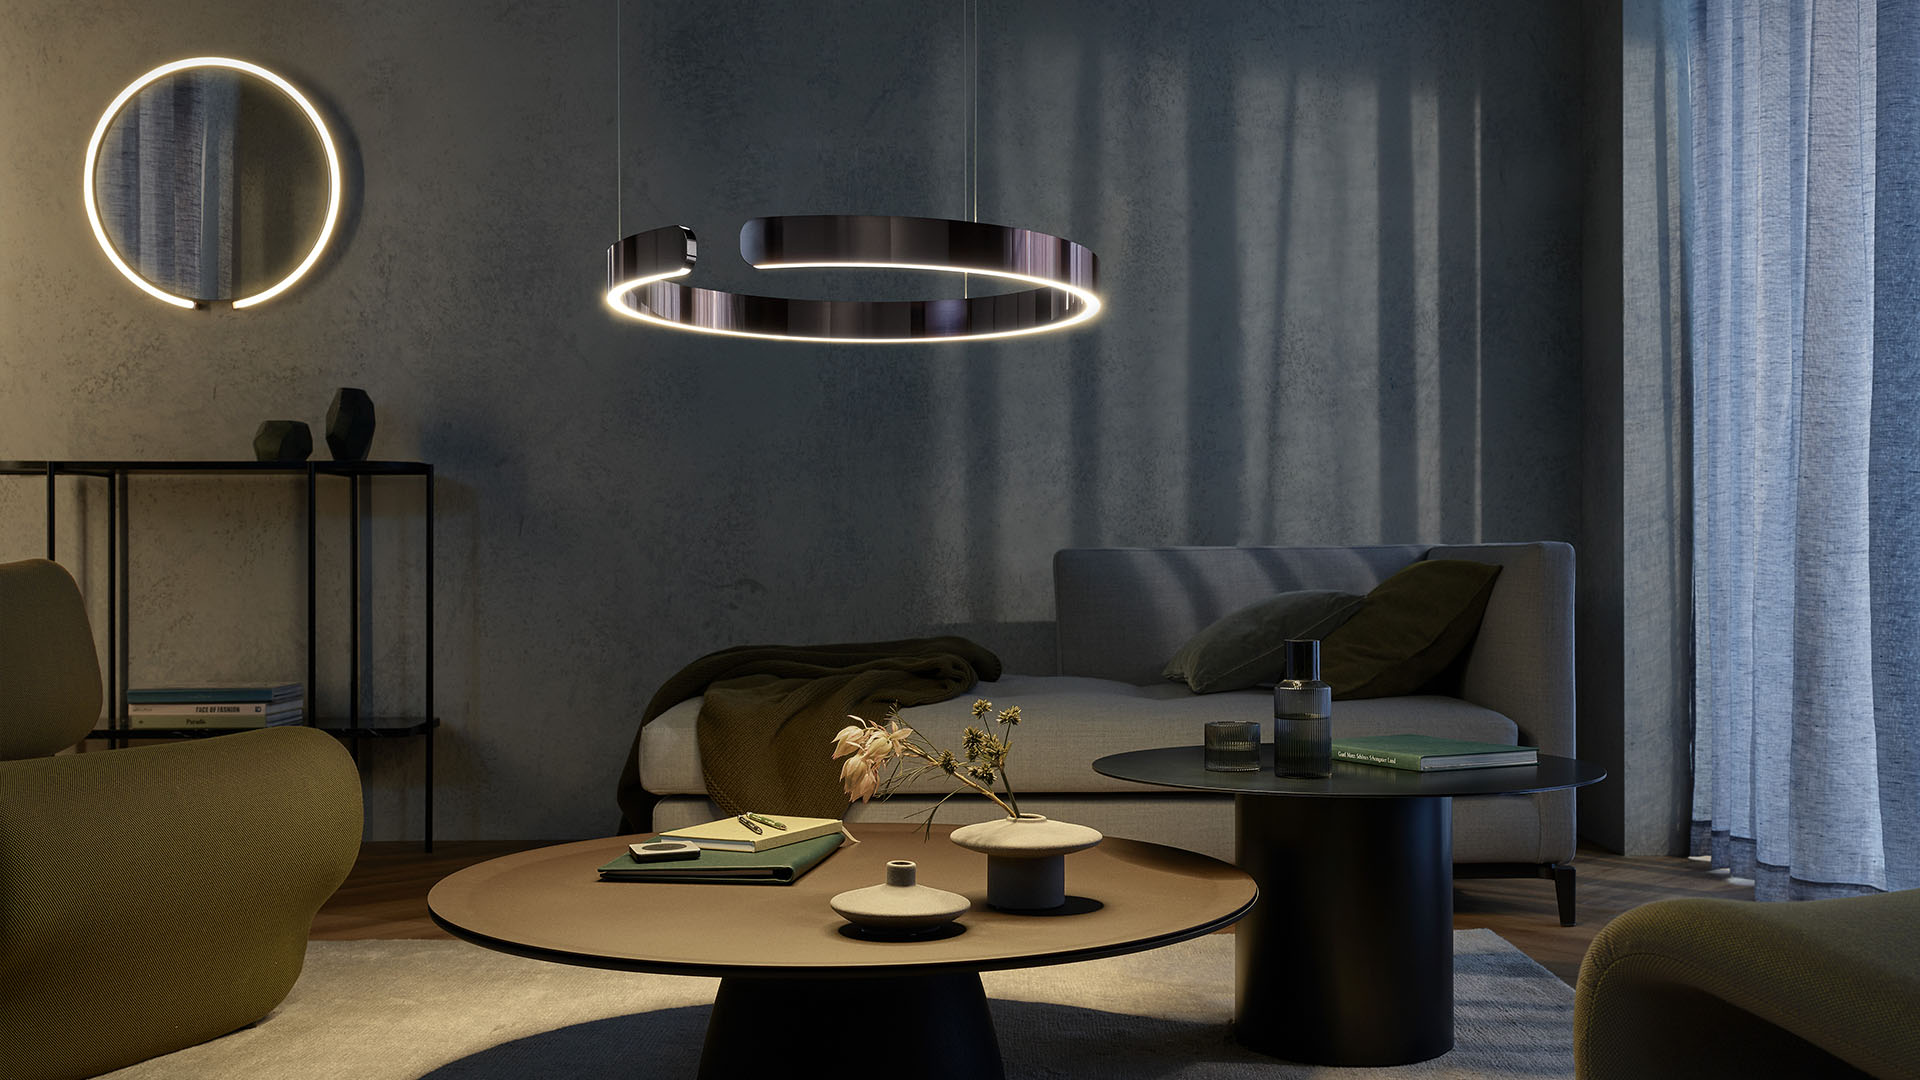 Mito sfera mirror light wall luminaire mirror with light